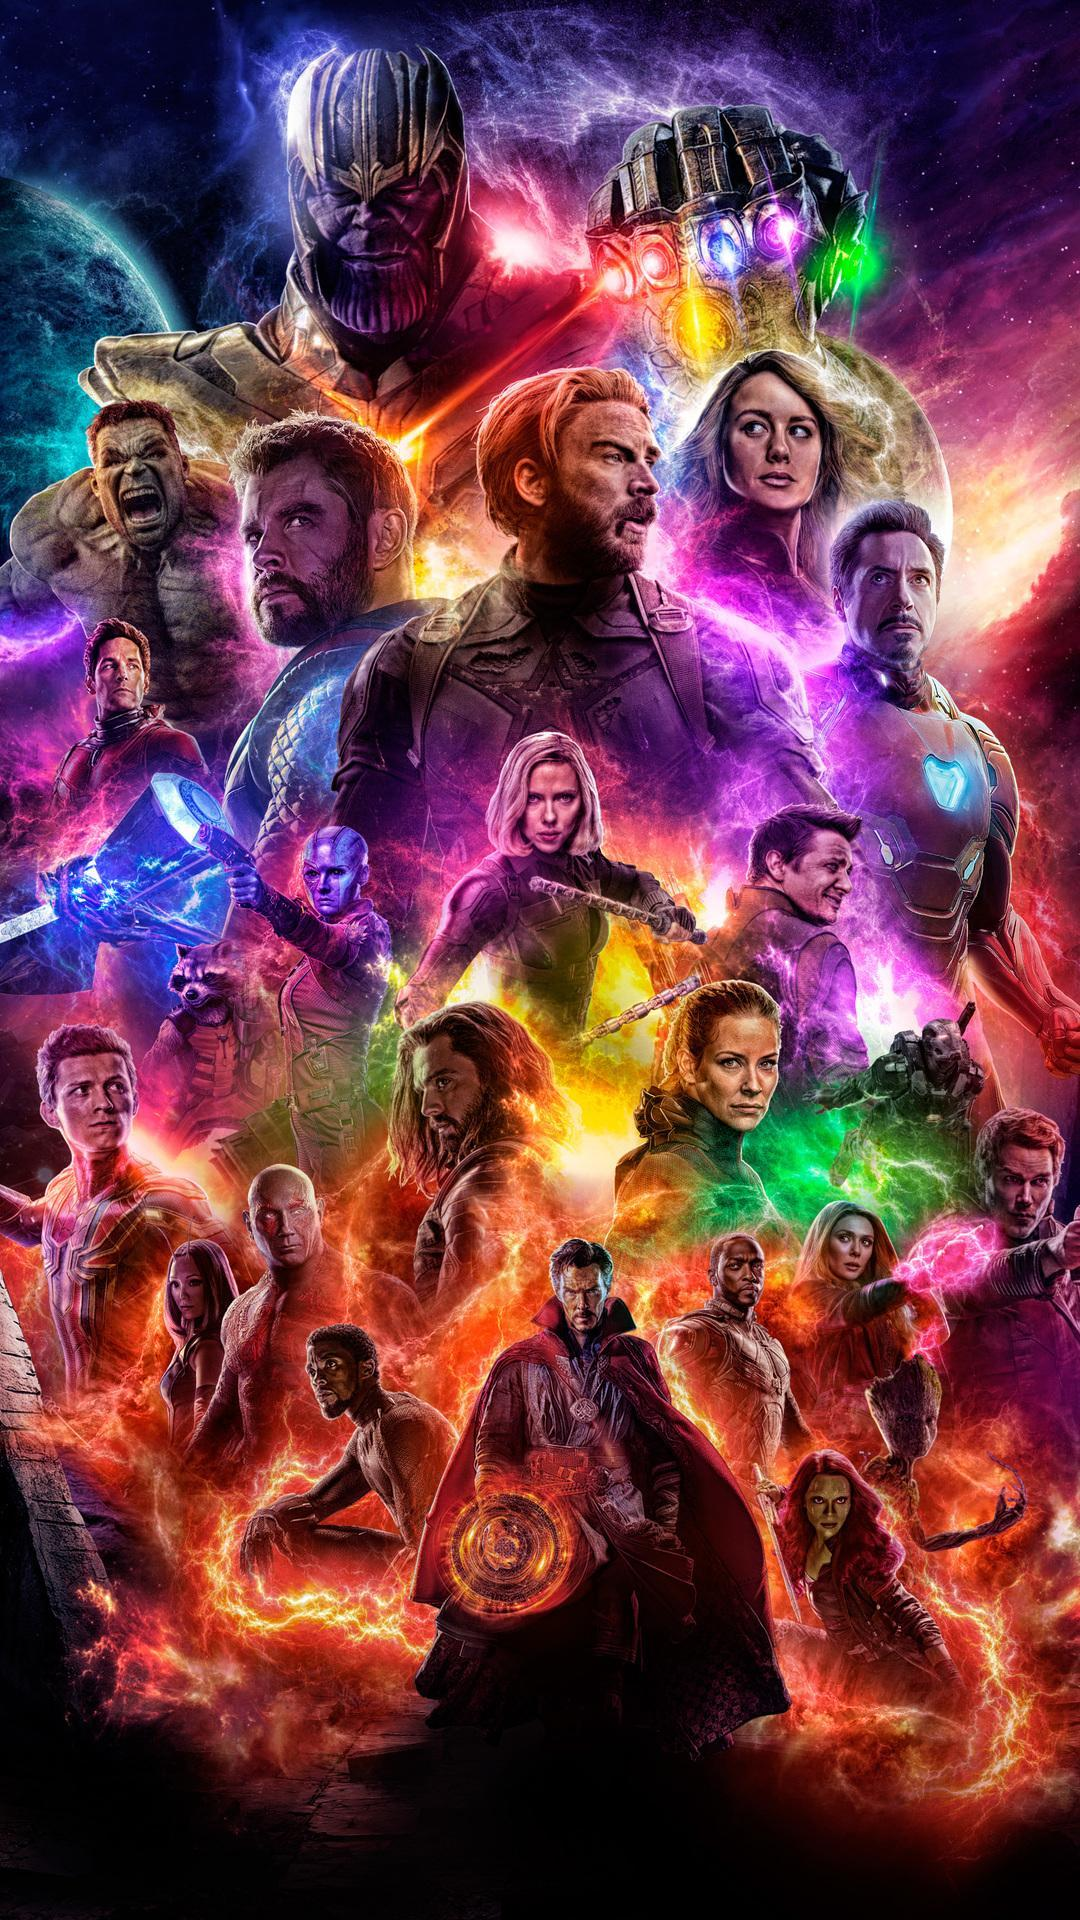 Marvel Avengers Wallpapers HD   4K for Android - APK Download